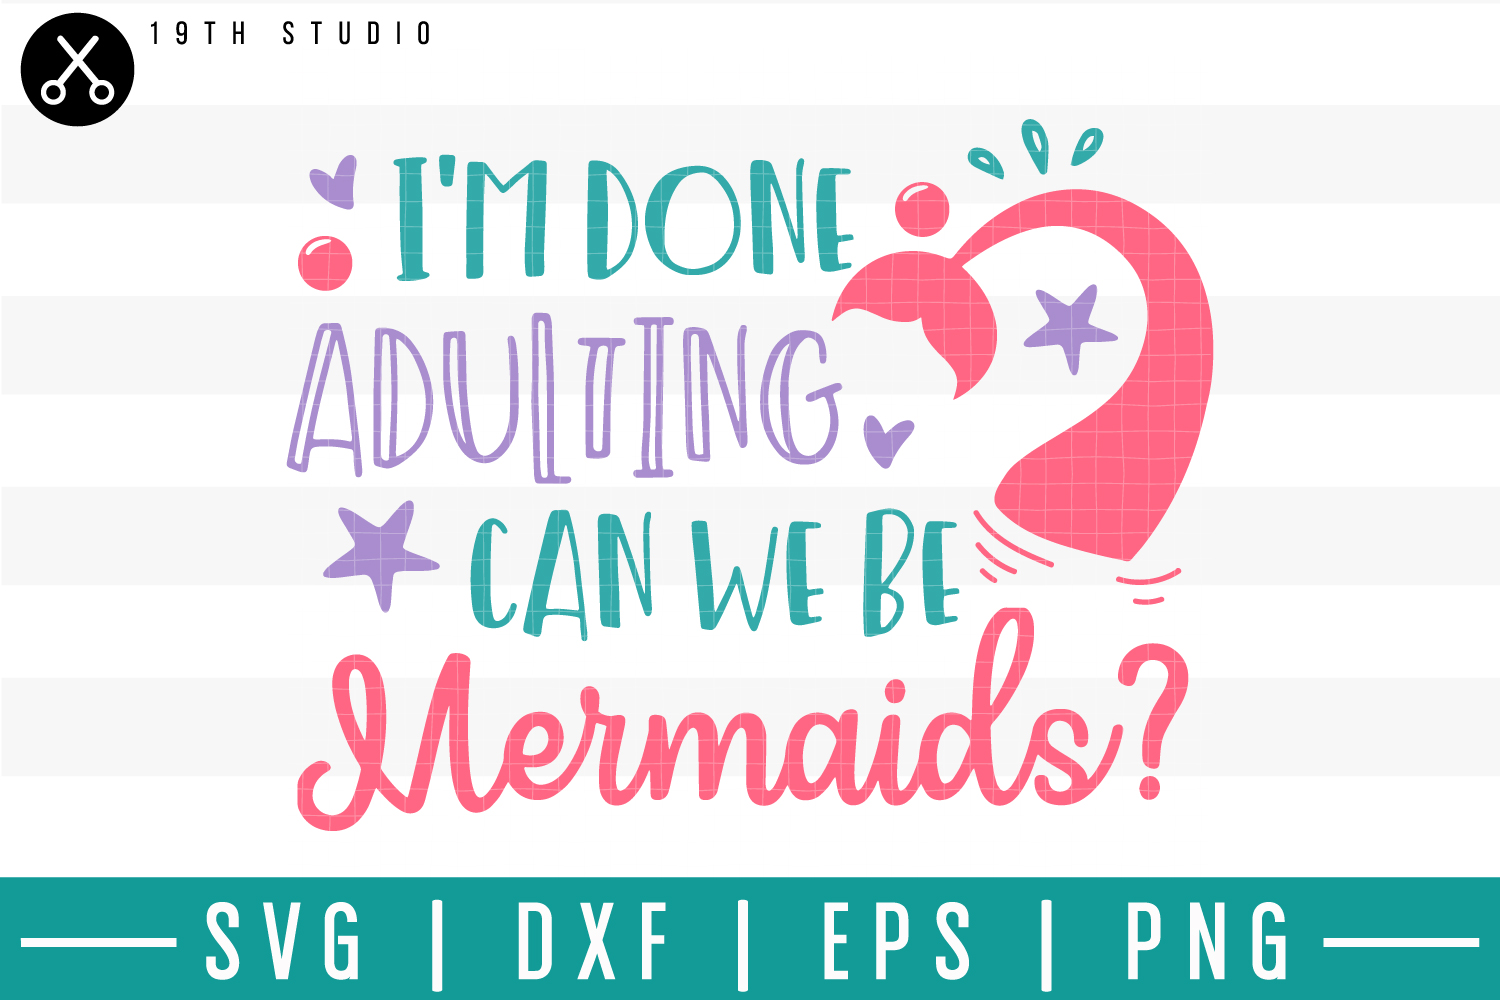 I'm done adulting can we be mermaids SVG  Mermaid SVG example image 1